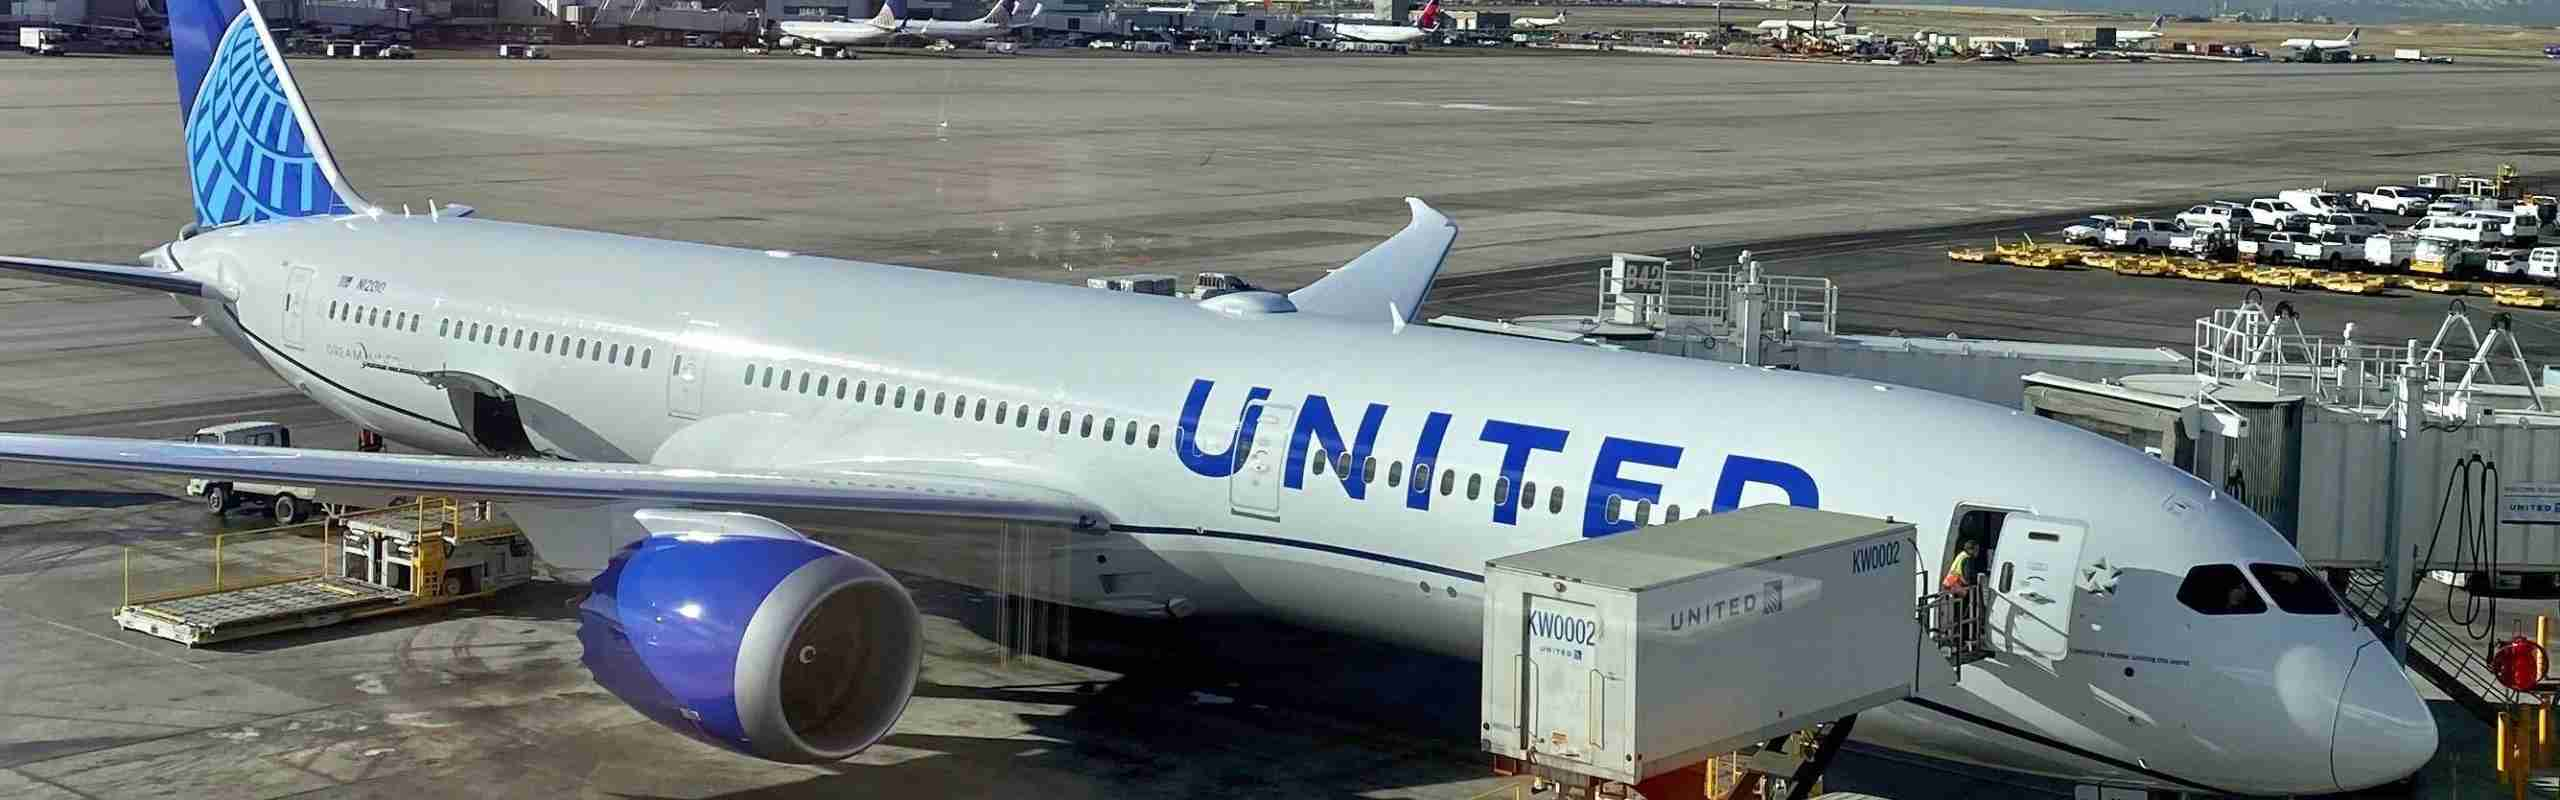 United's new livery on a Boeing 787 at Denver airport.